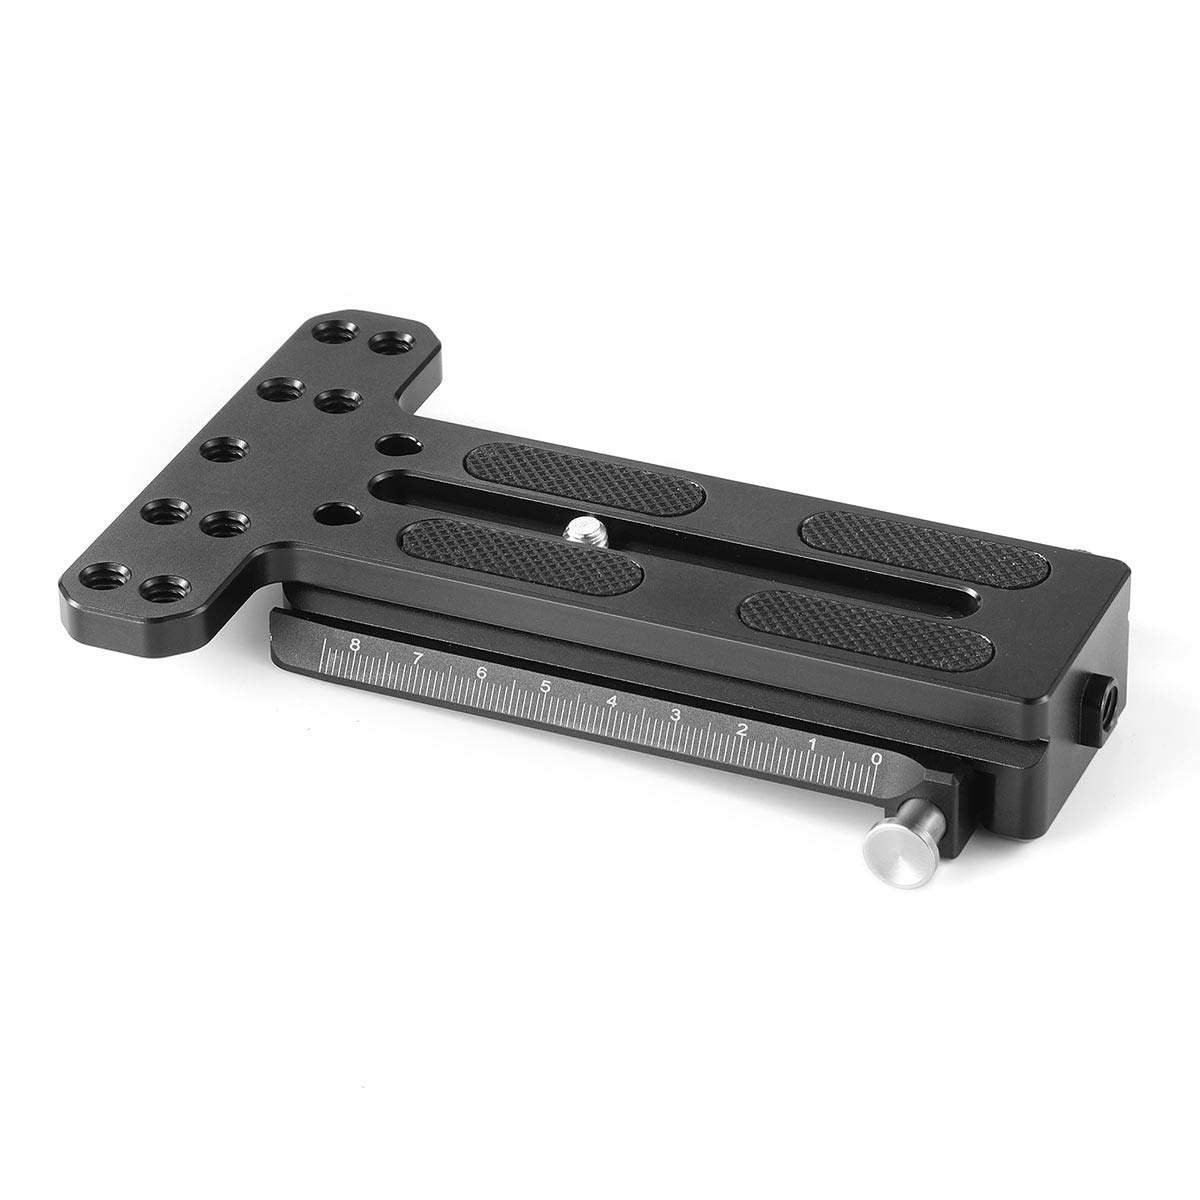 Smallrig 2283 Counterweight Mounting Plate (for Arca Type